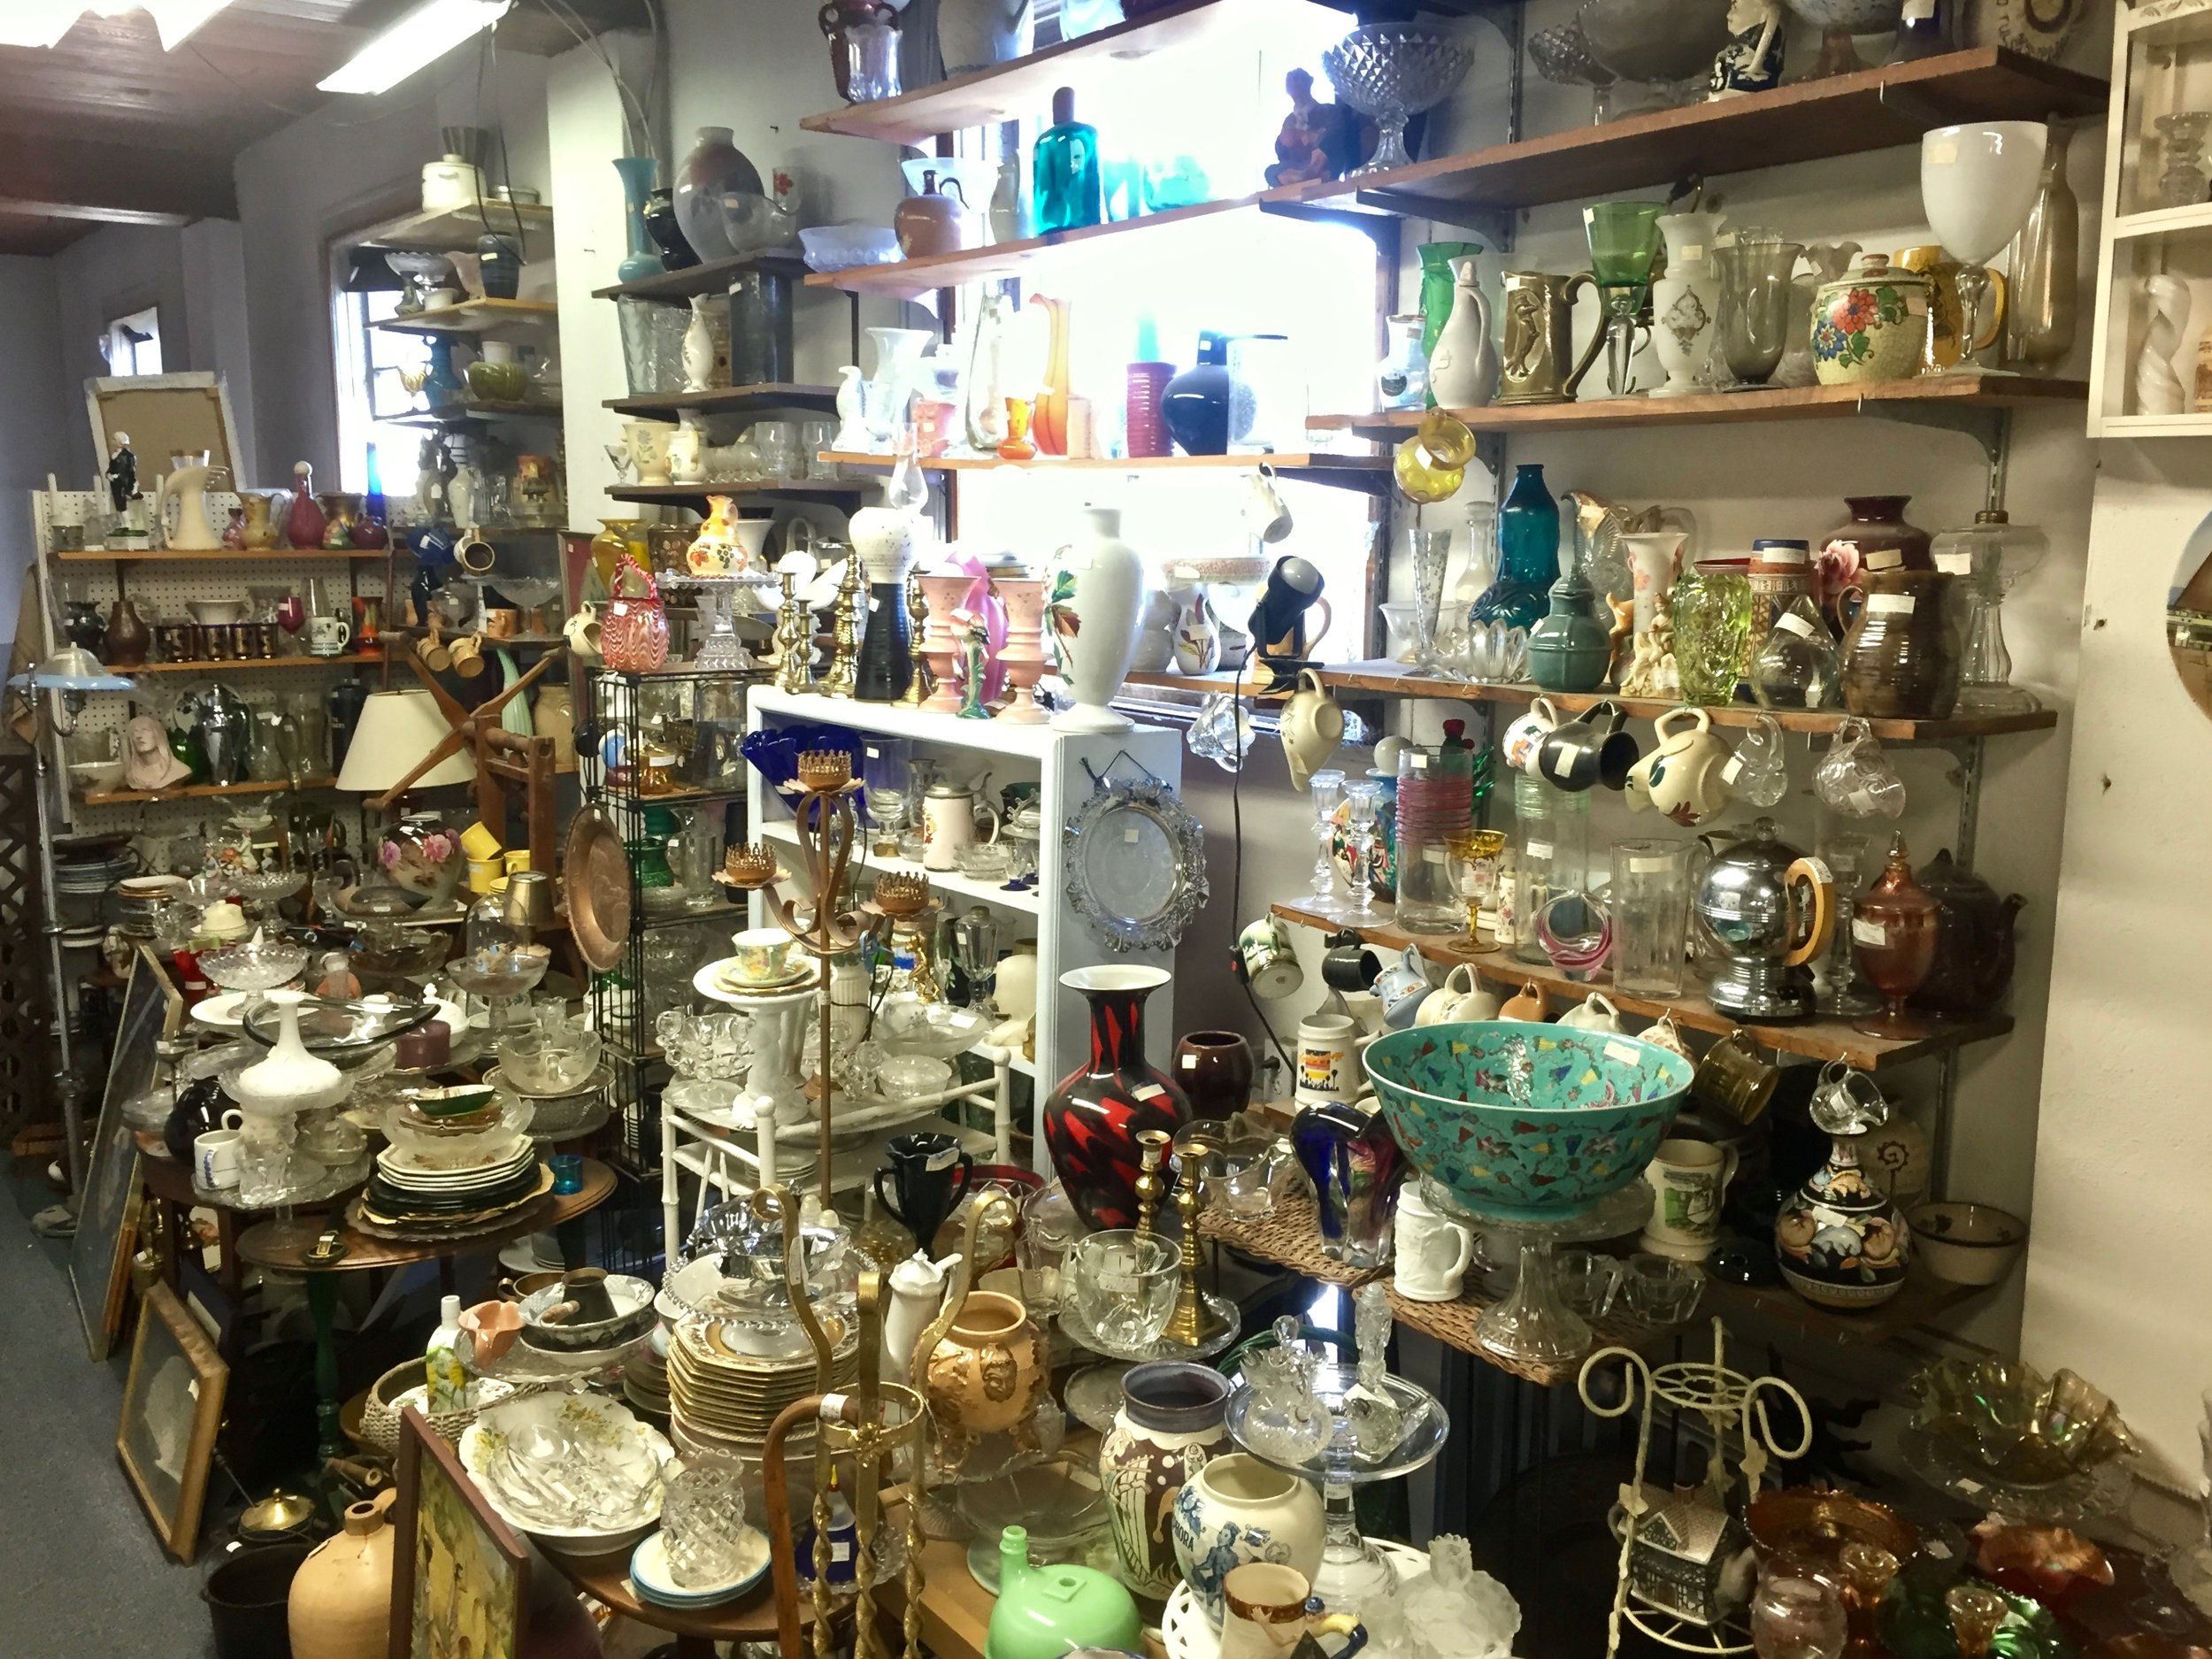 RICHARD'S WALL   Richard has been buying and selling antiques for over four decades, and offers an eclectic assortment on the 2nd floor balcony of The Summit Antiques Center. Visit Richard's Wall at the top of the stairs for surprising and unusual finds. Thank you.